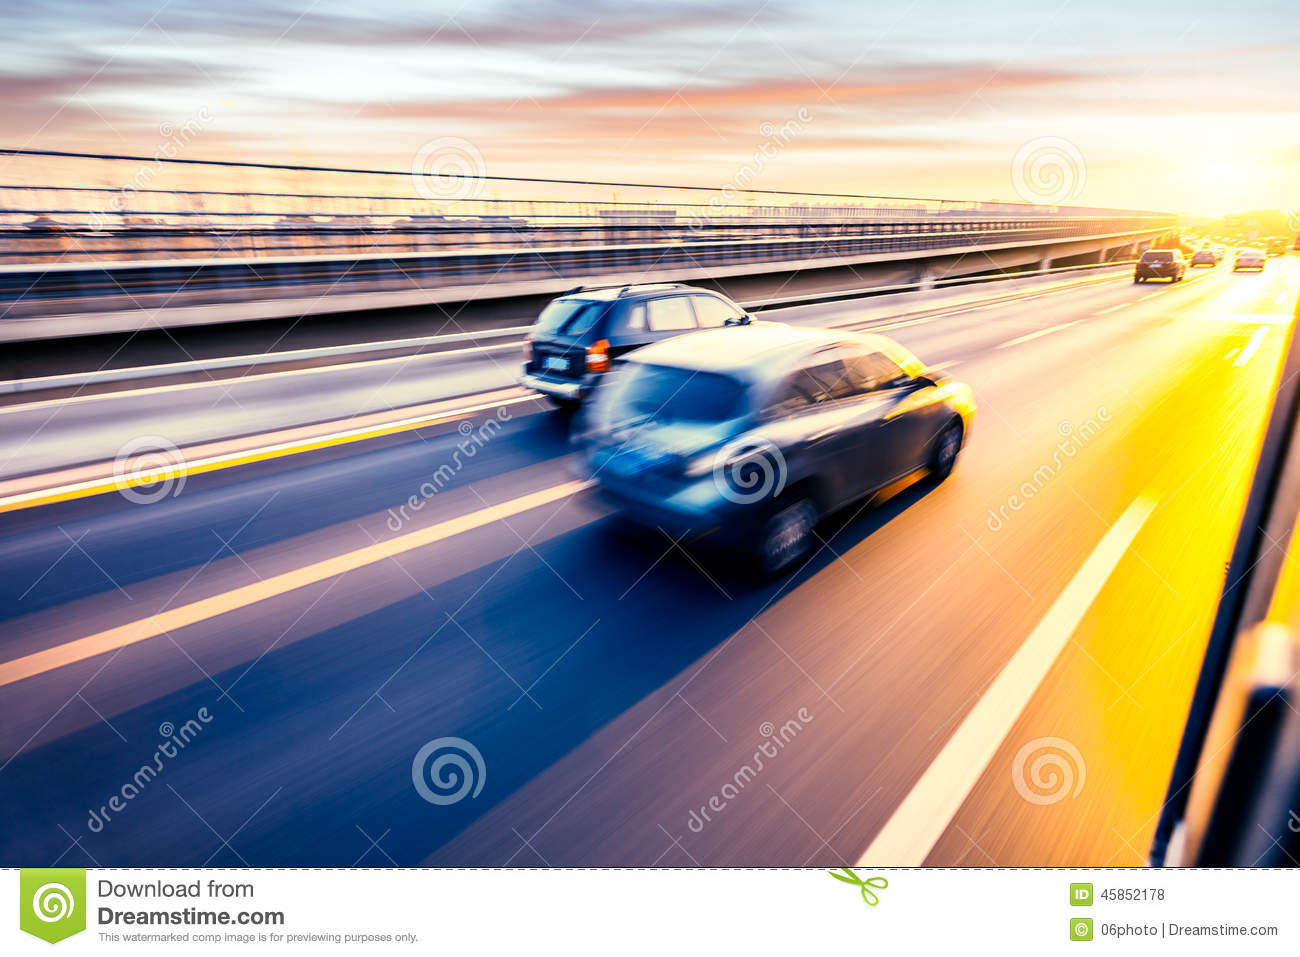 Car driving on freeway, motion blur